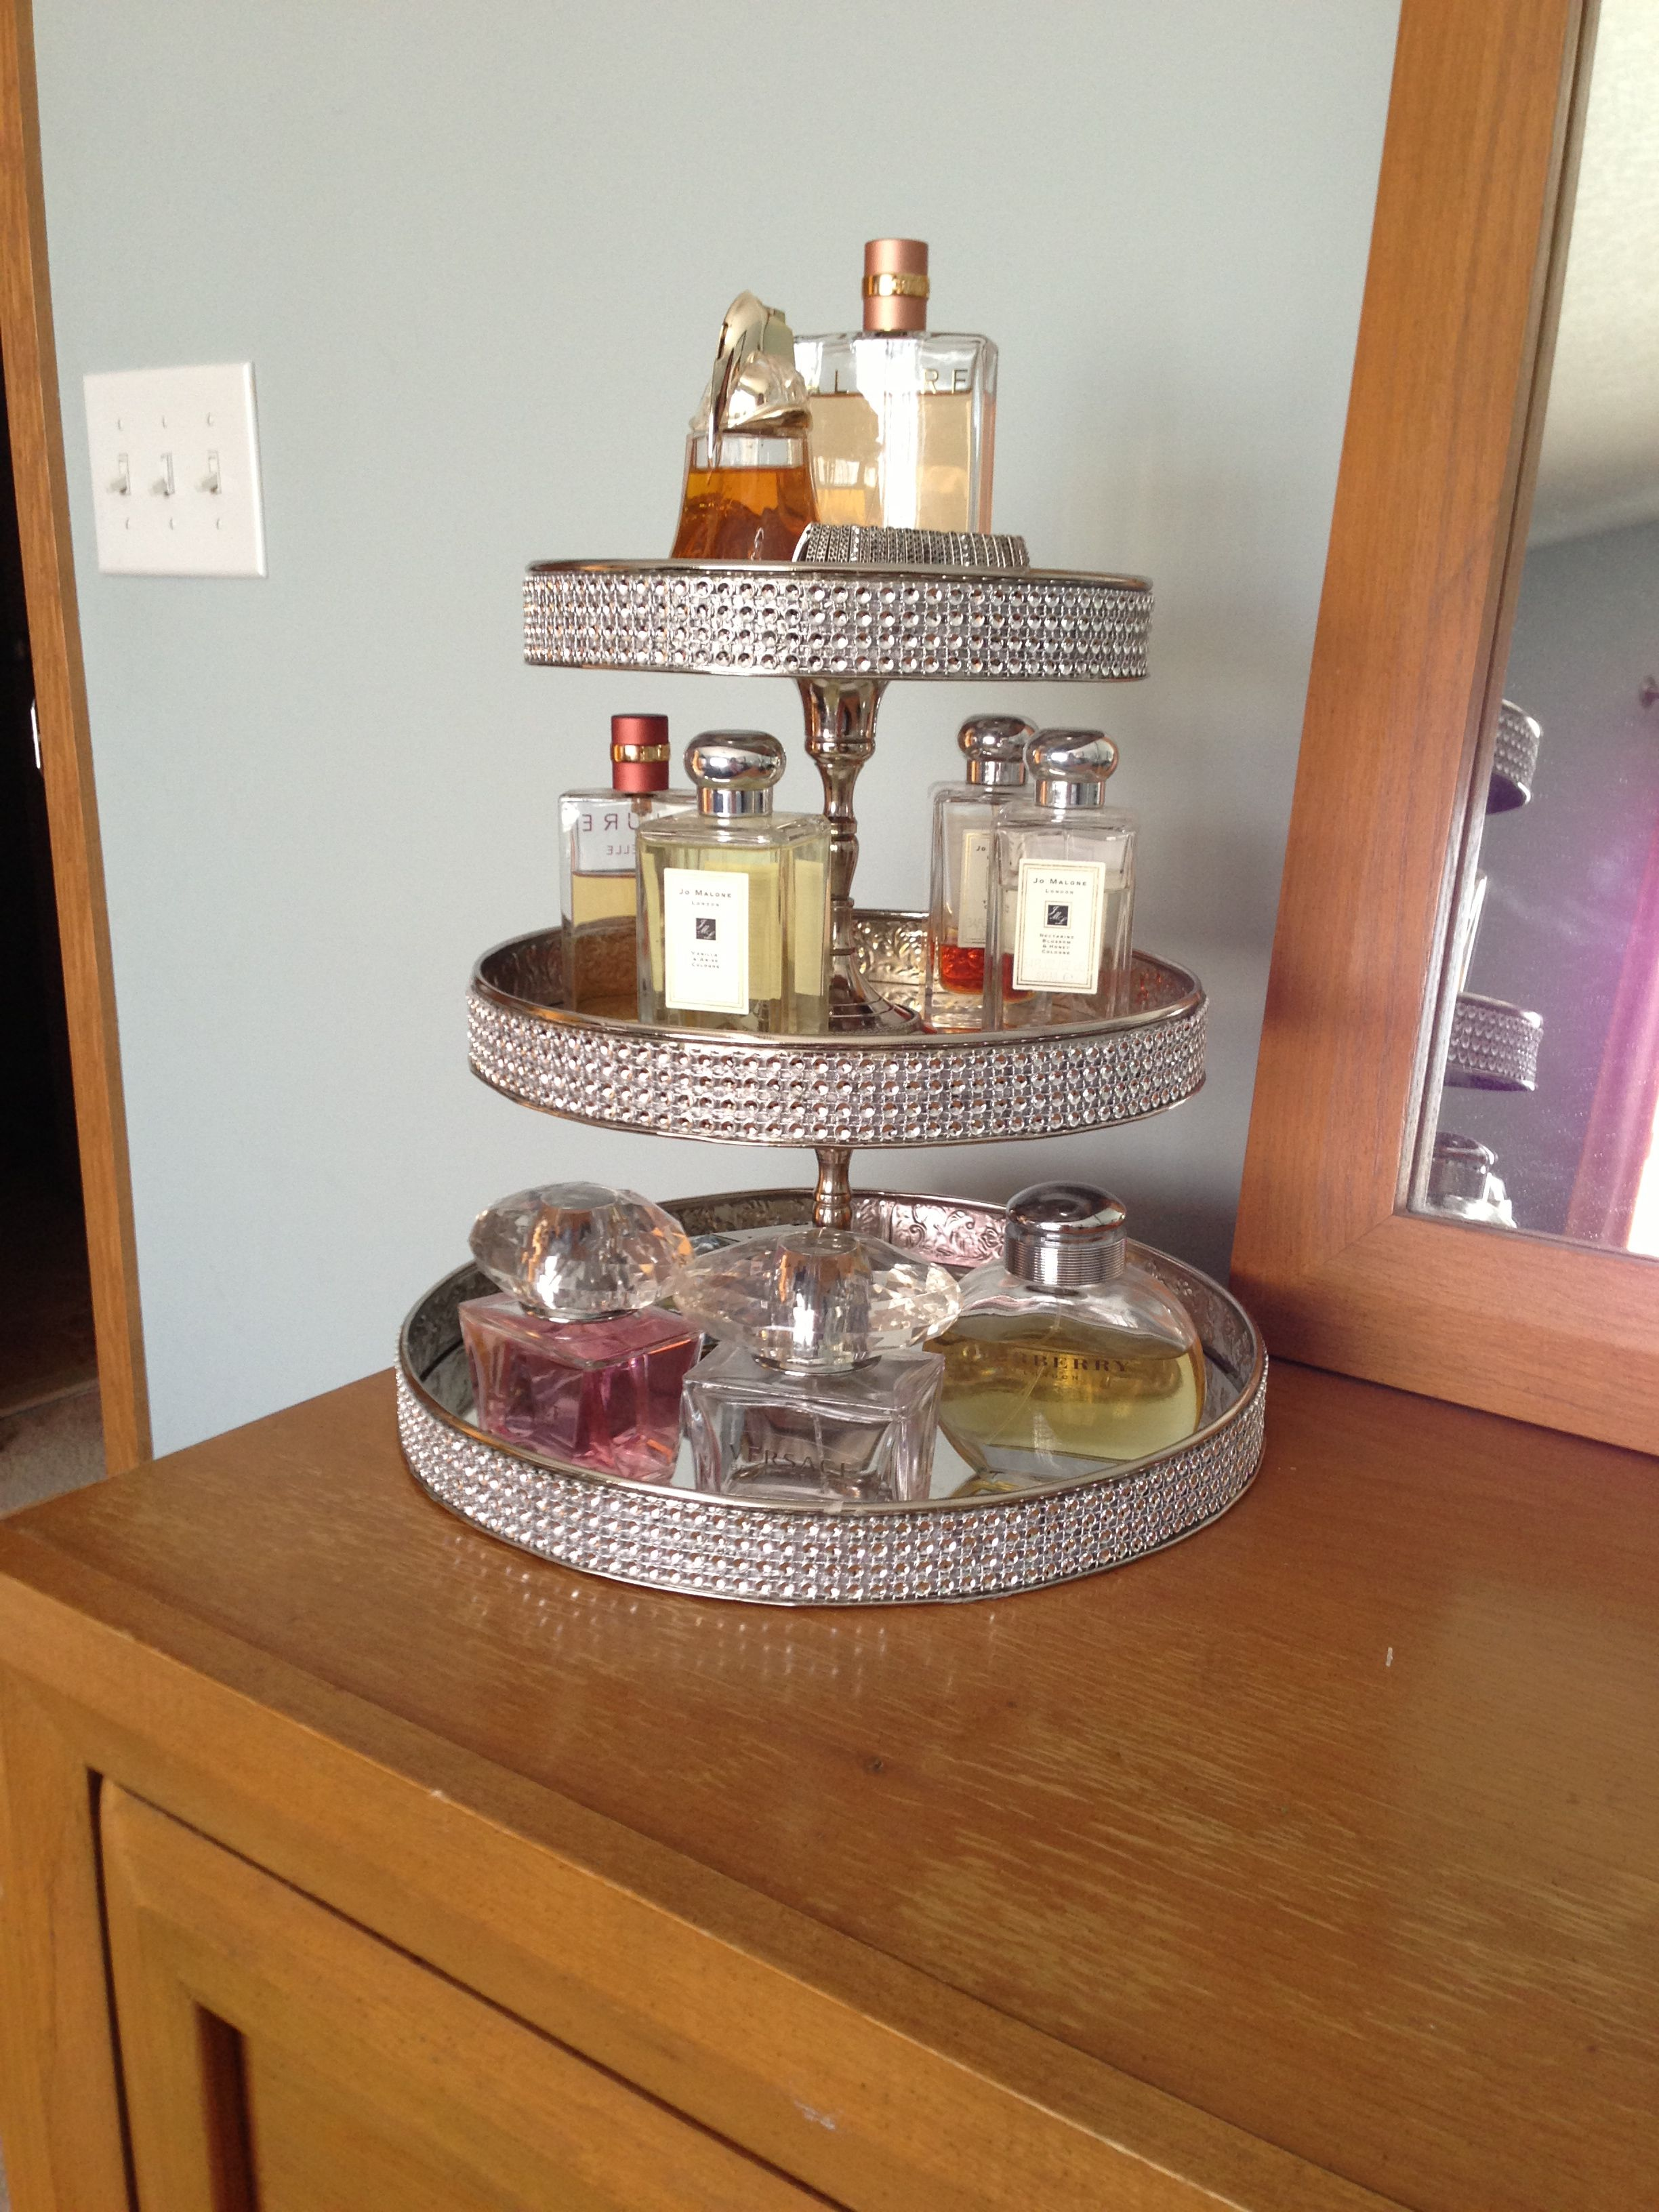 diy perfume tray diy pinterest perfume tray perfume and trays. Black Bedroom Furniture Sets. Home Design Ideas